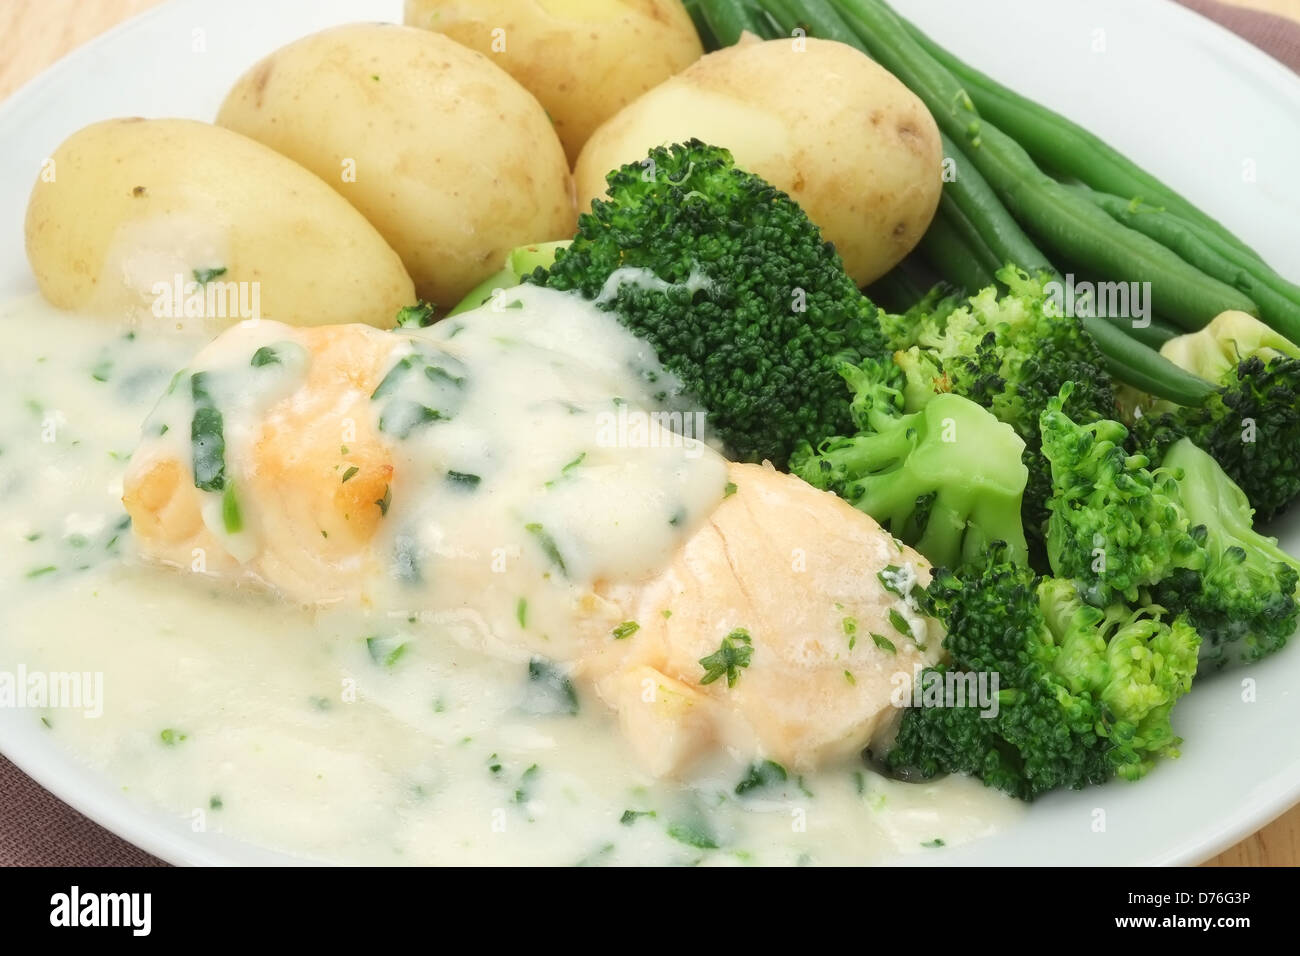 Grilled salmon fillet with new potatoes broccoli green for Fish and broccoli diet